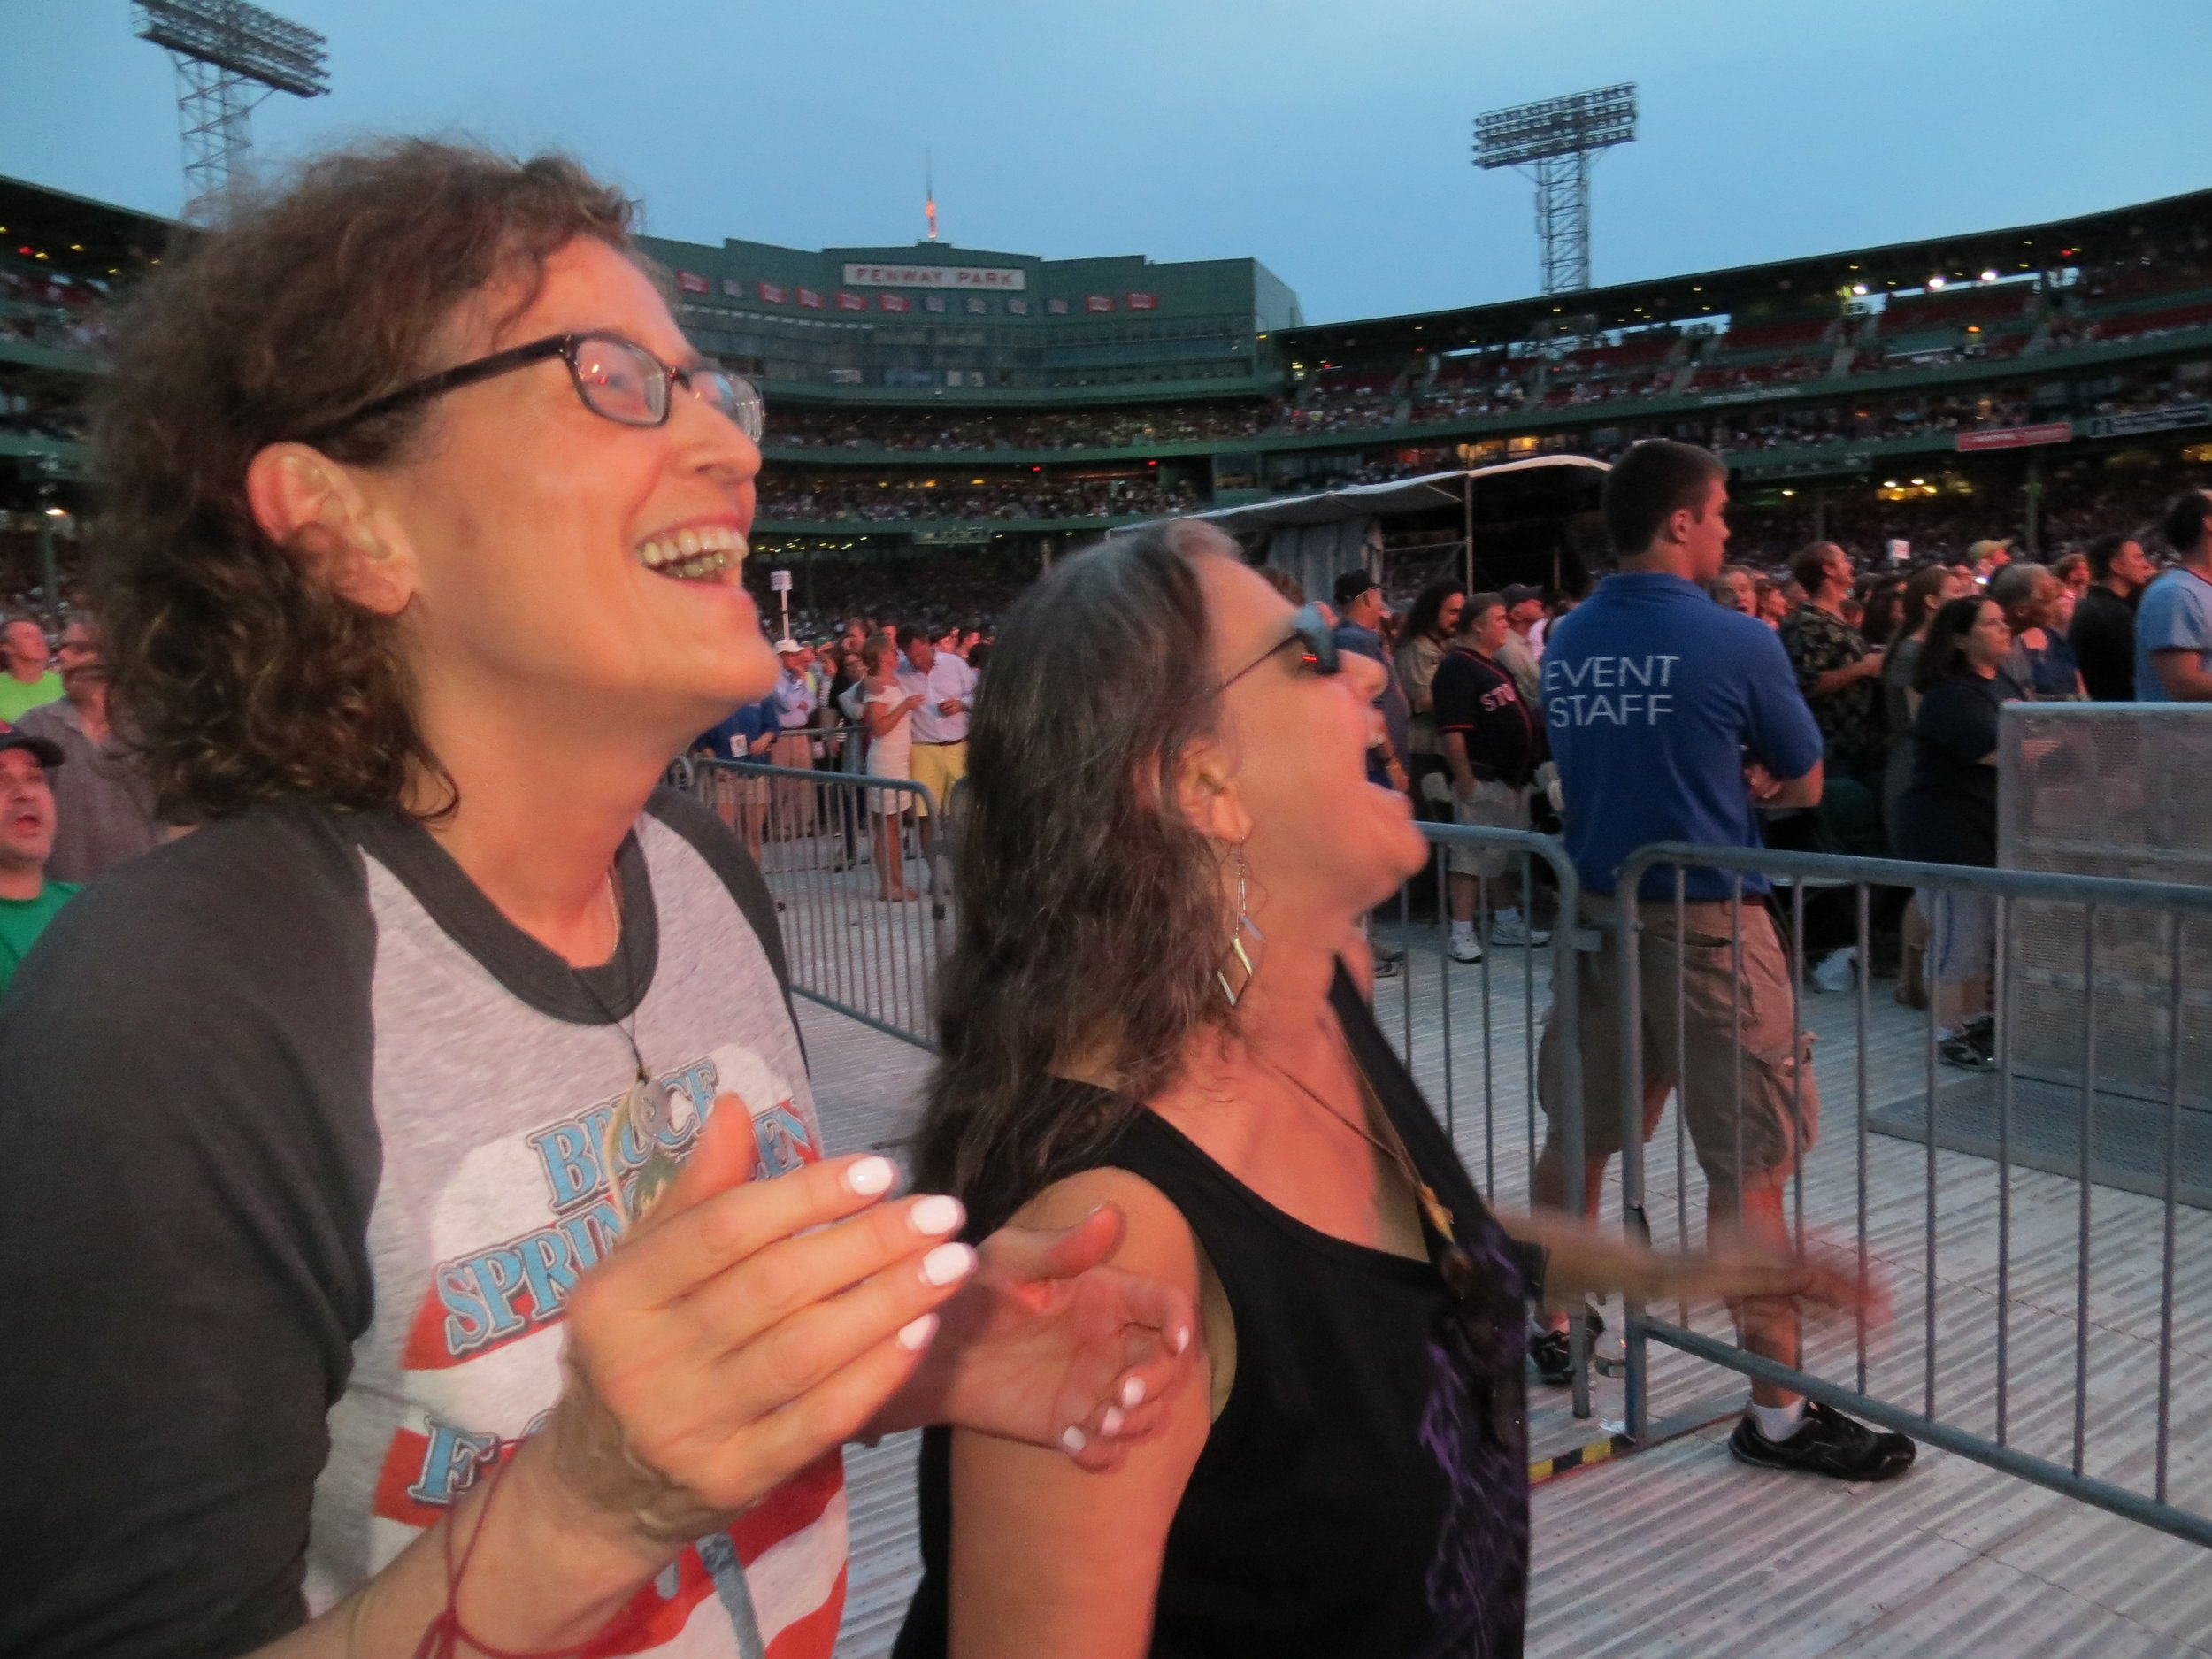 I took this picture of Amy and Bobbi at the Bruce Springsteen show in Fenway Park, 2013